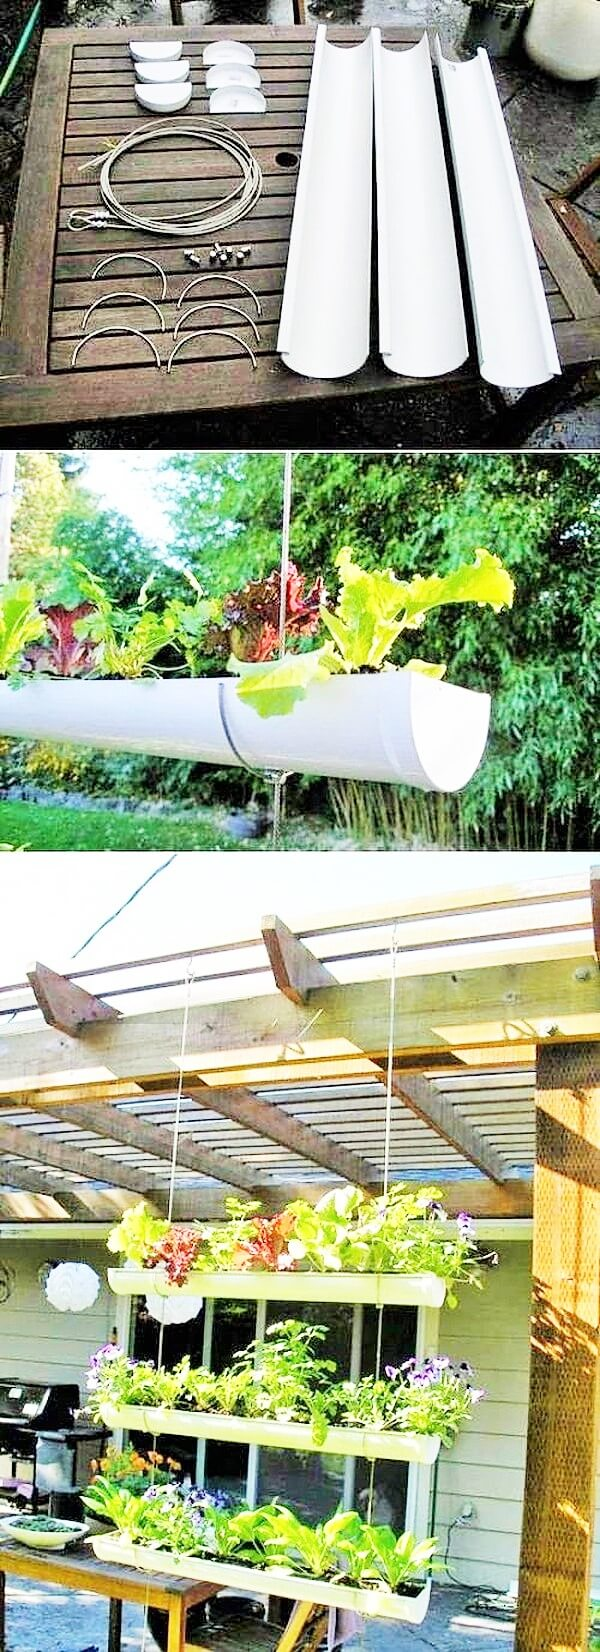 DIY-vertical-garden-ideas-4